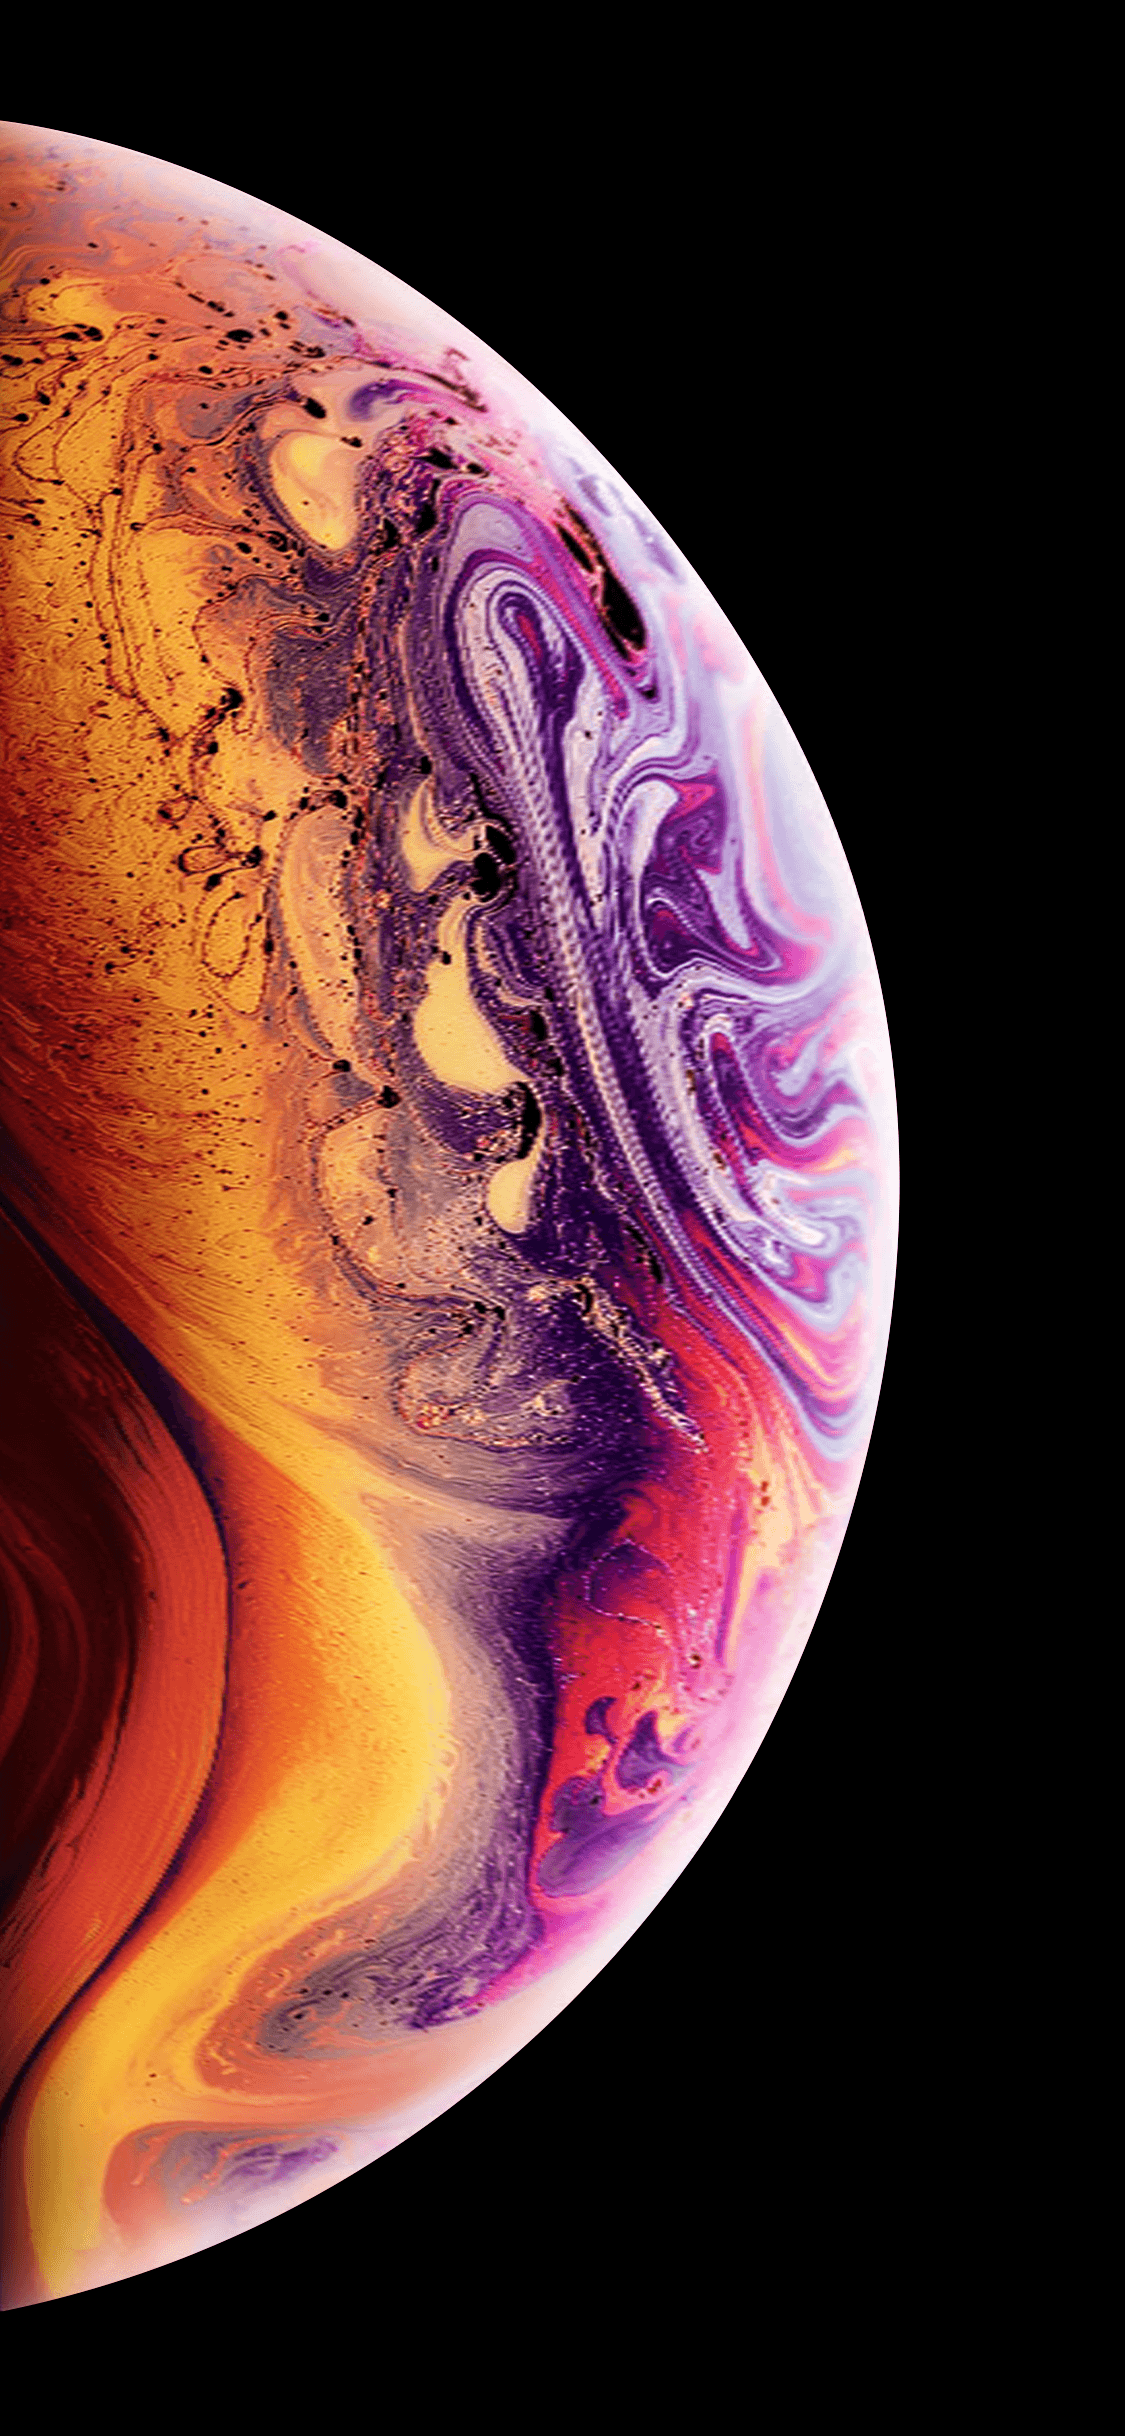 Download an Unofficial 'iPhone XS' Wallpapers Here If You're